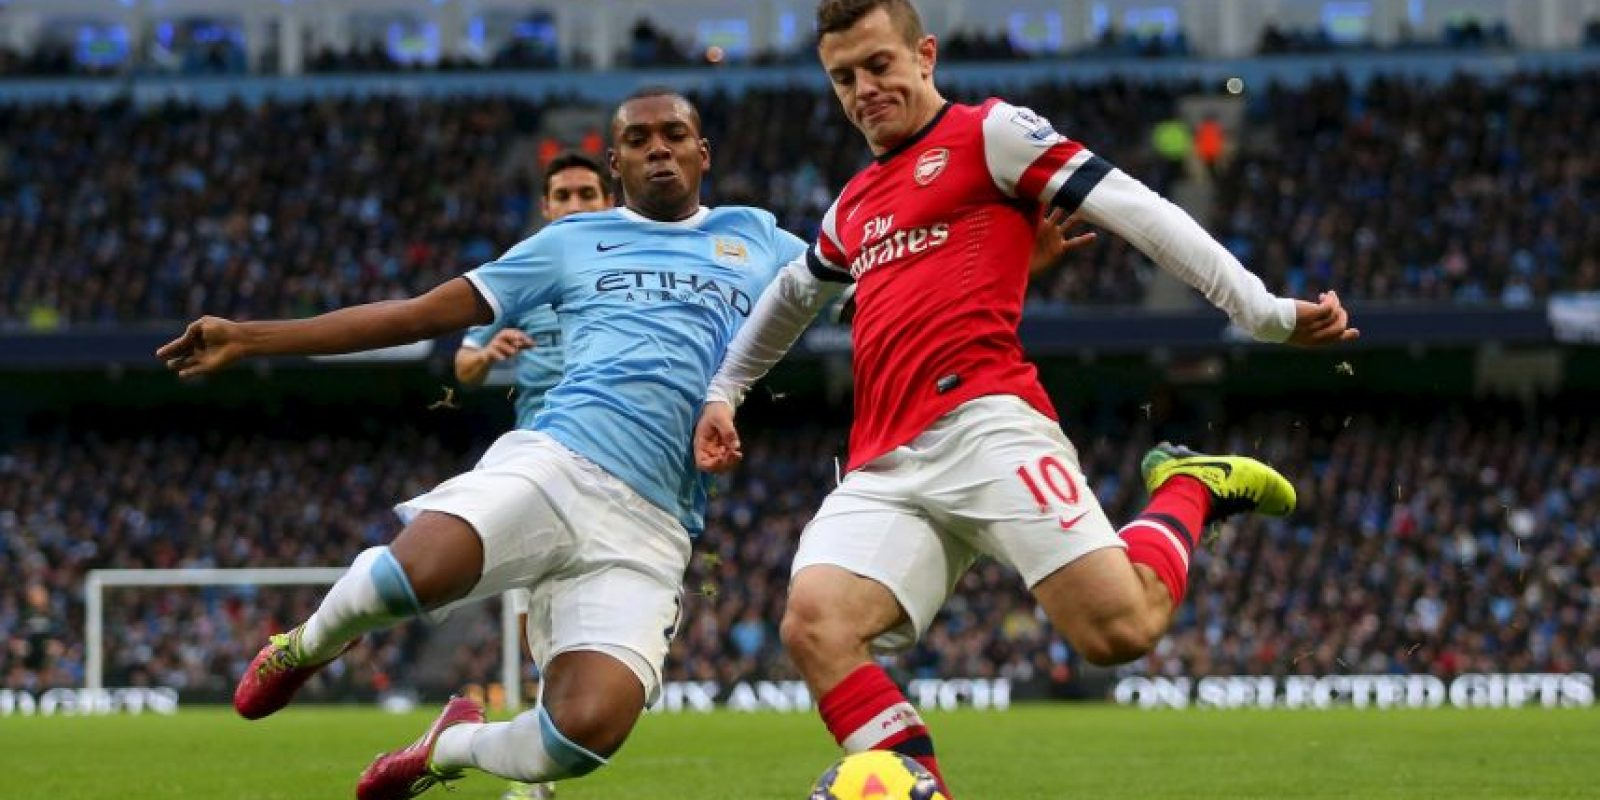 Arsenal vs. Manchester City Foto:Getty Images